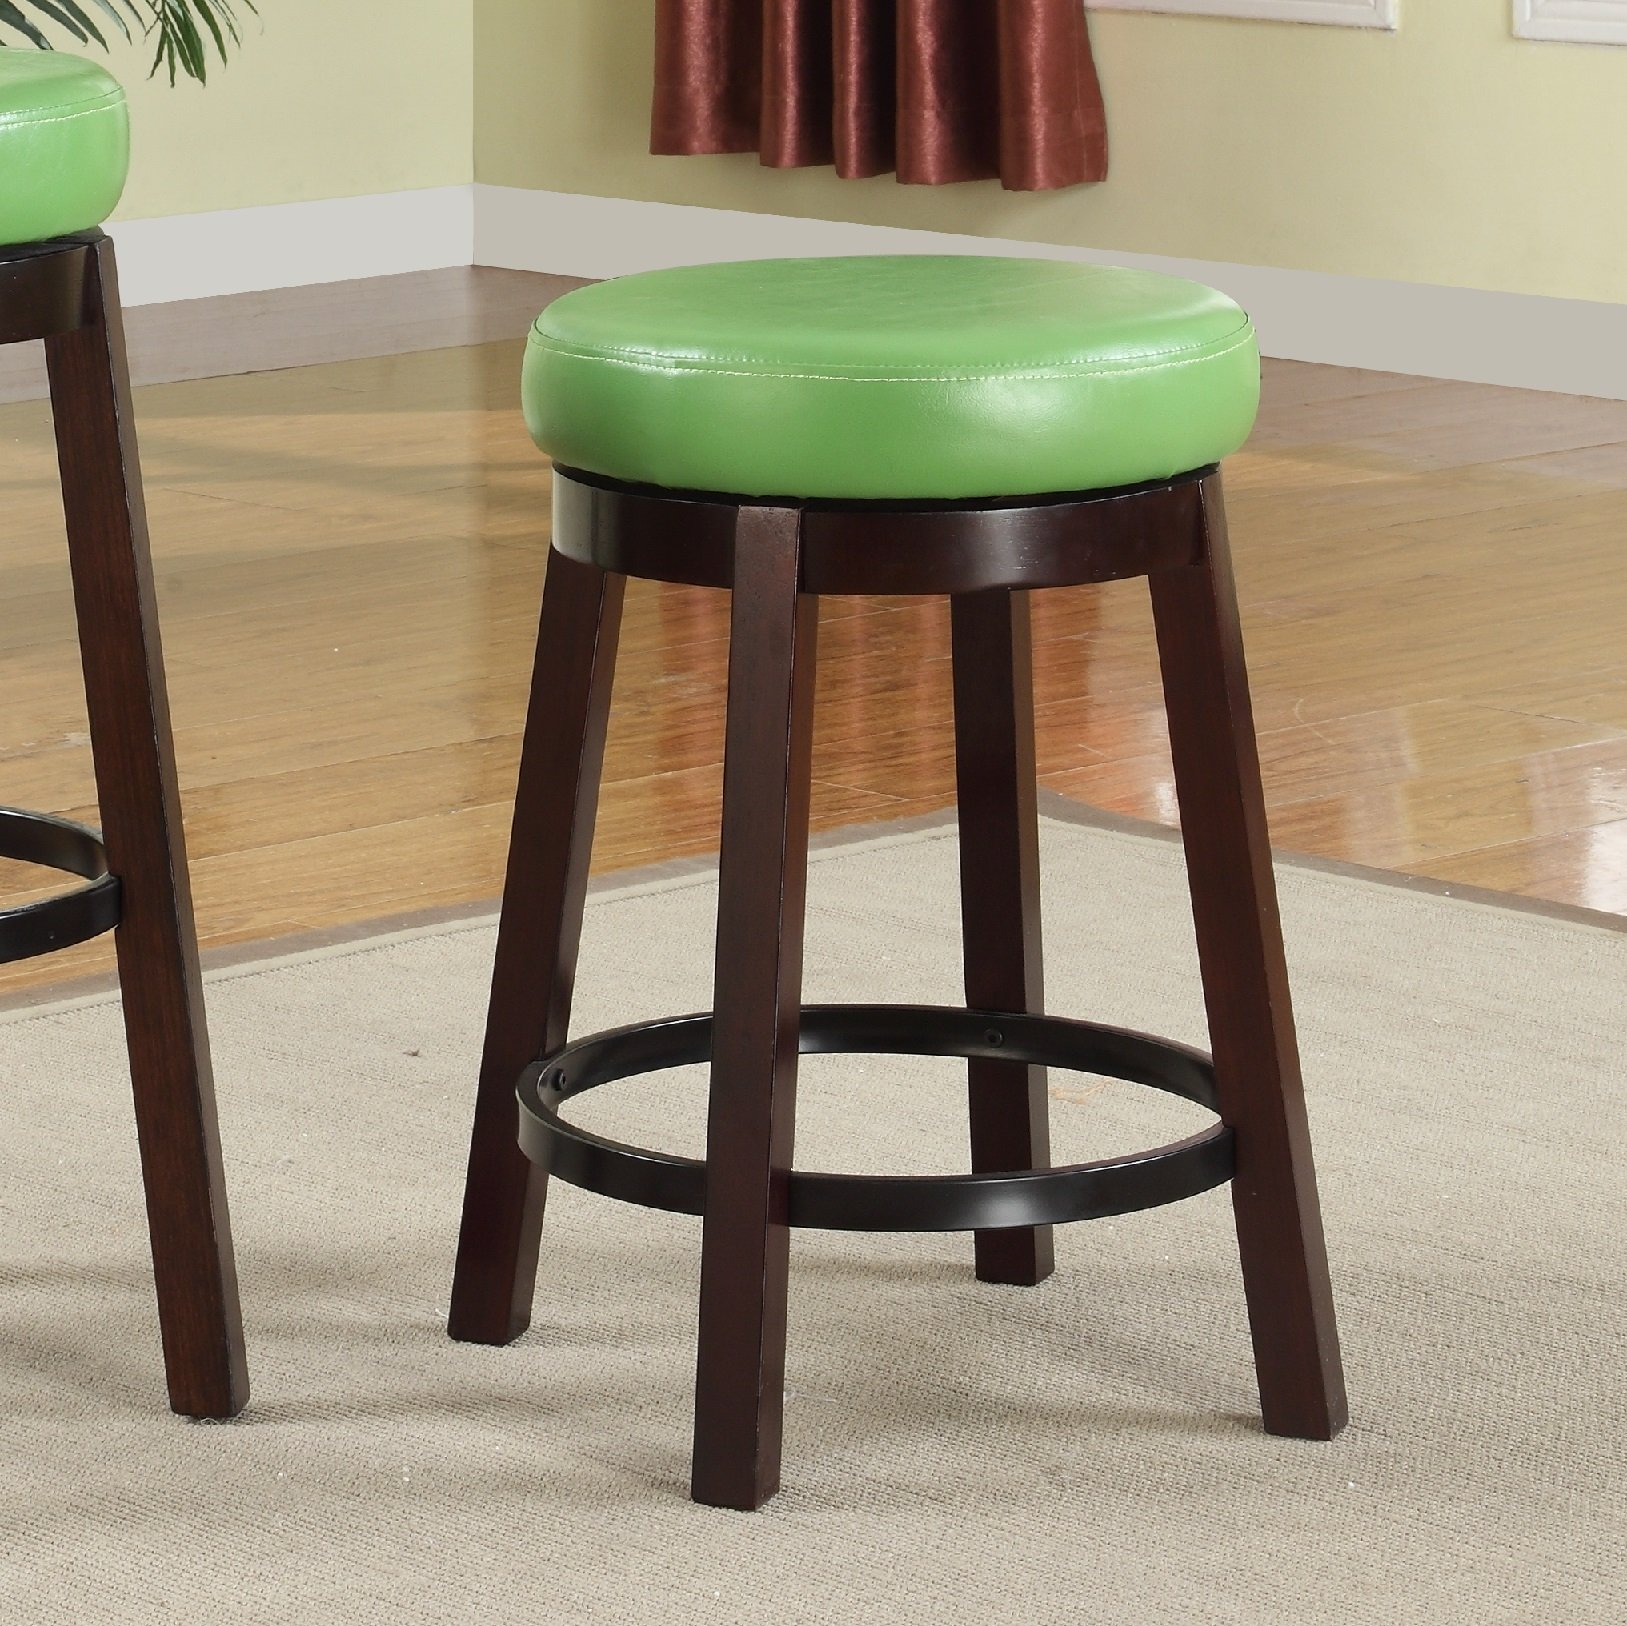 Roundhill Furniture Wooden Swivel Barstools, Counter Height, Lime Green, Set of 2